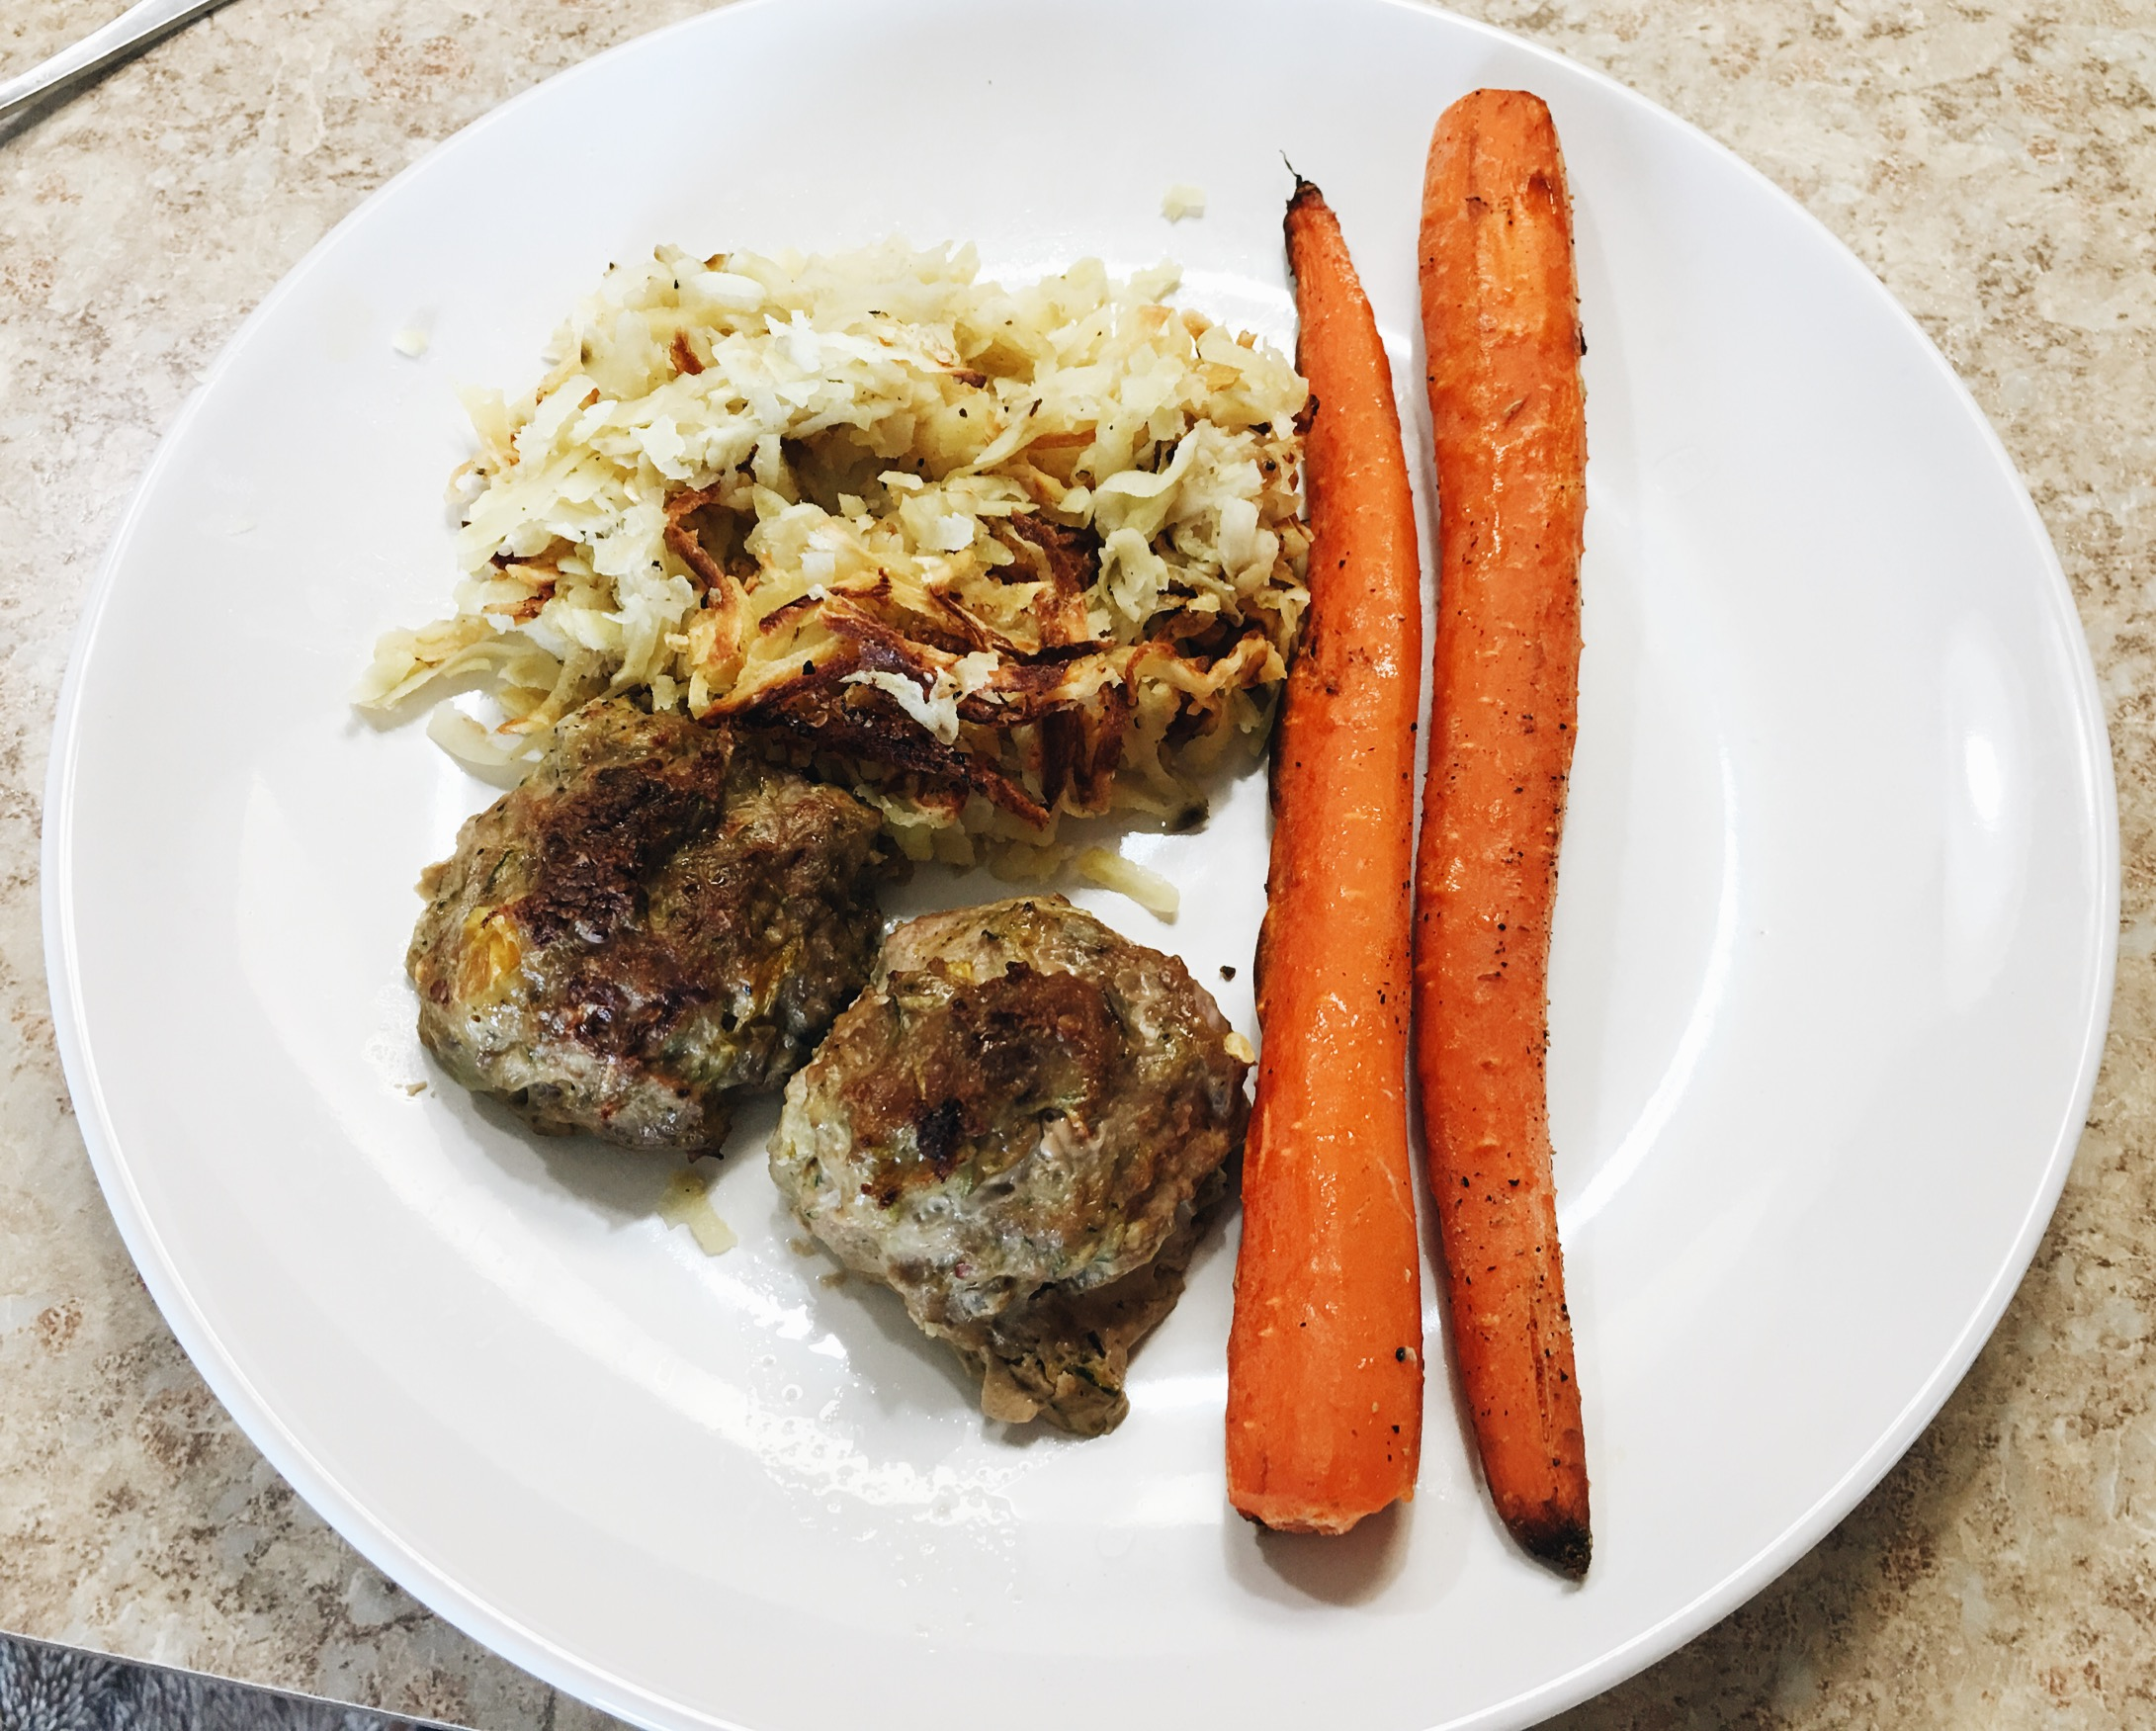 Turkey meatballs same as above. White sweet potato hash. Roasted carrots.